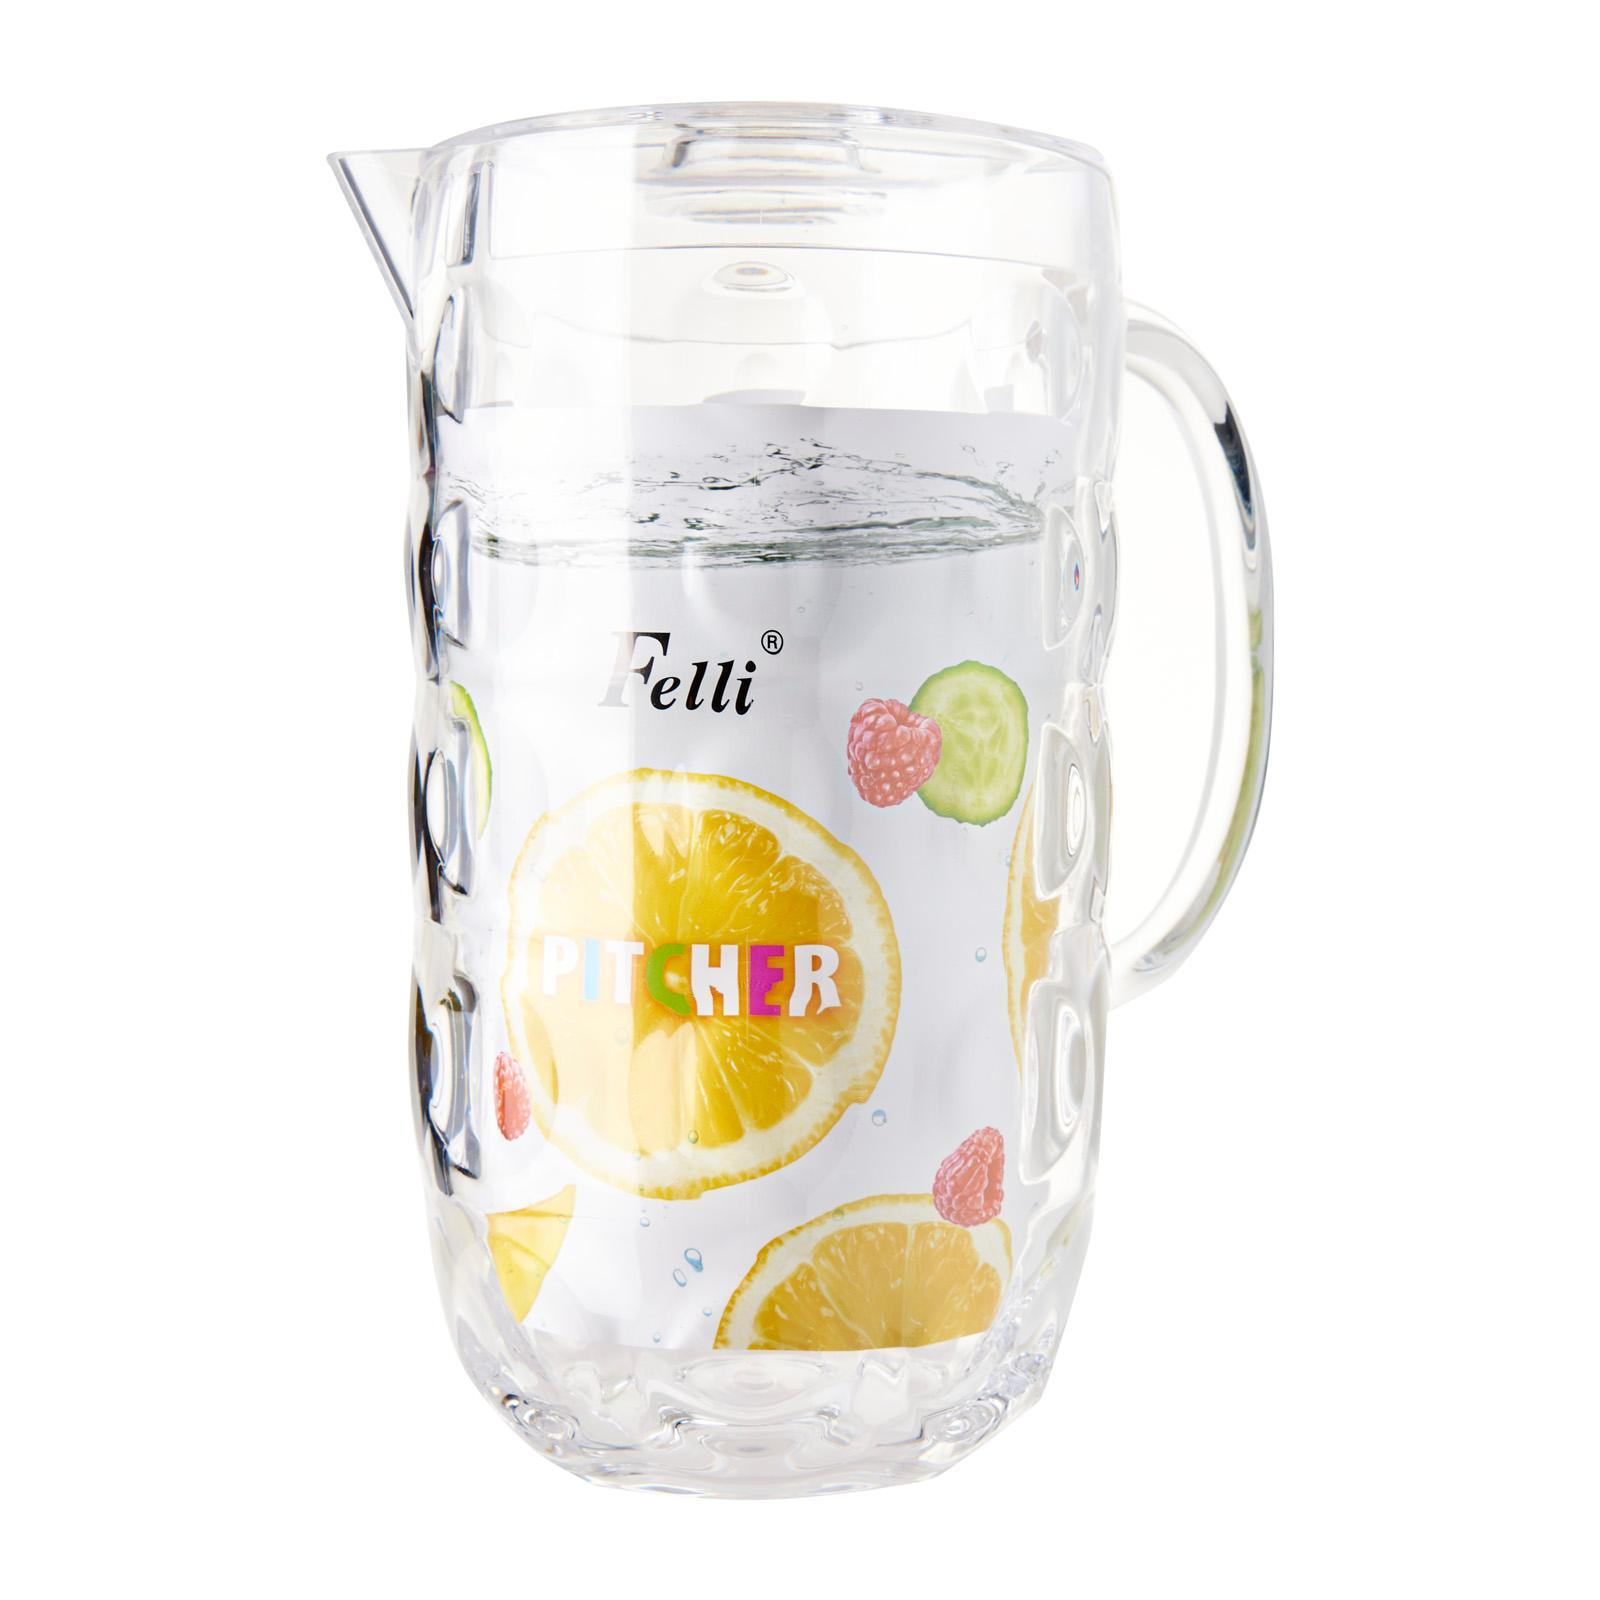 Felli Water Pitcher 2.2L